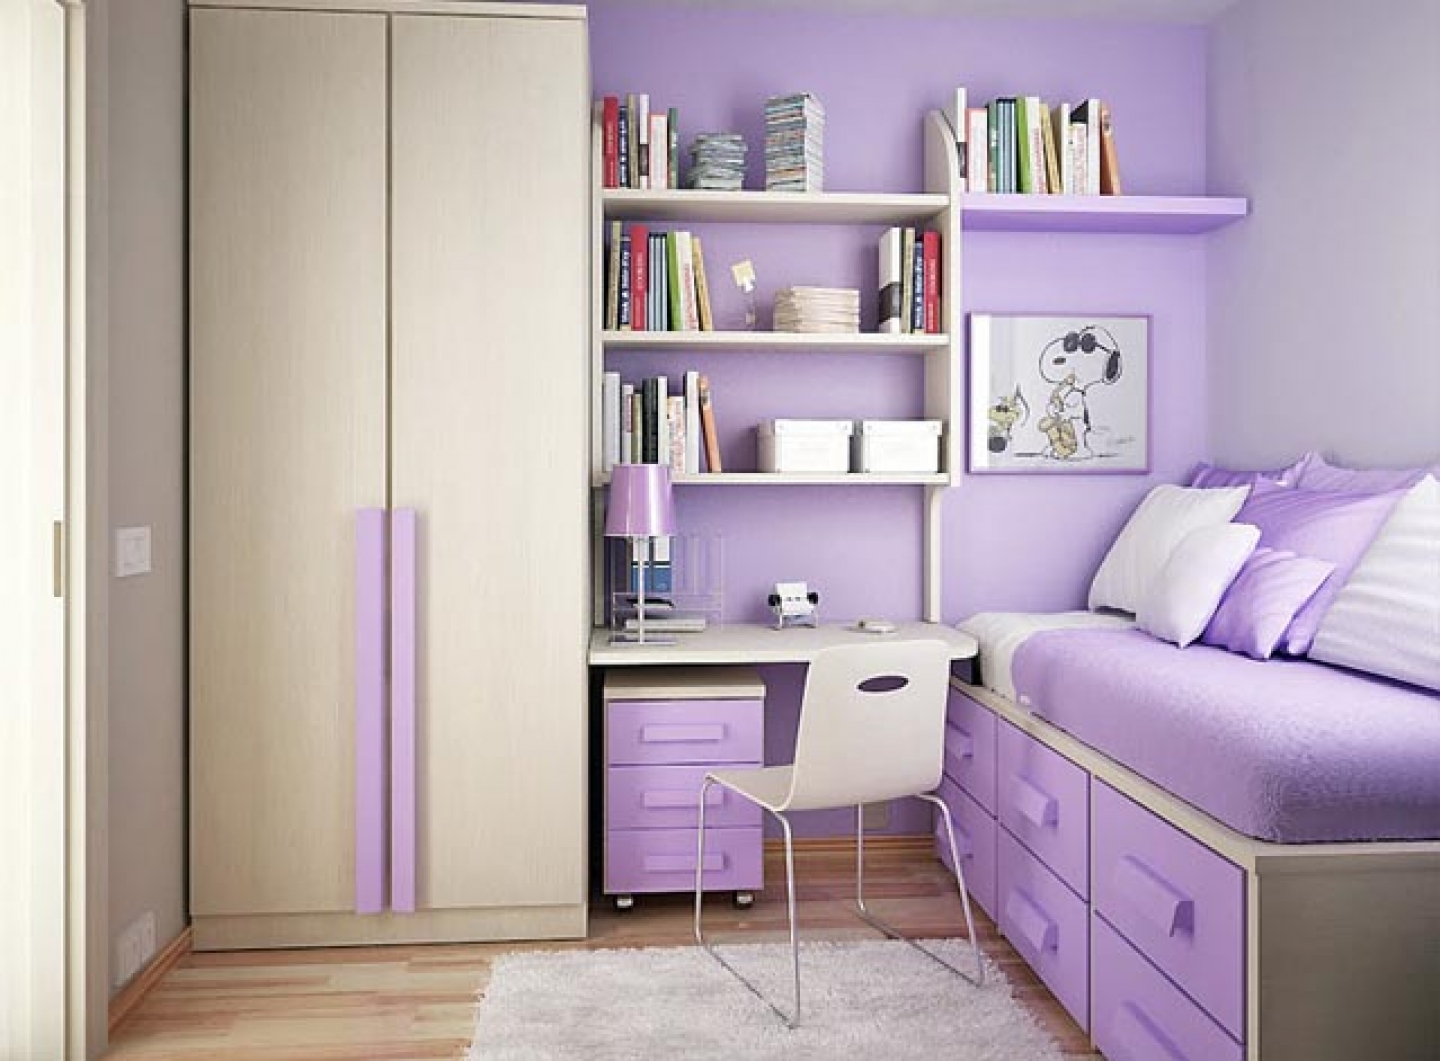 teenage girl bedroom ideas for small rooms awesome cute bedroom ideas for small rooms HBVFLQB